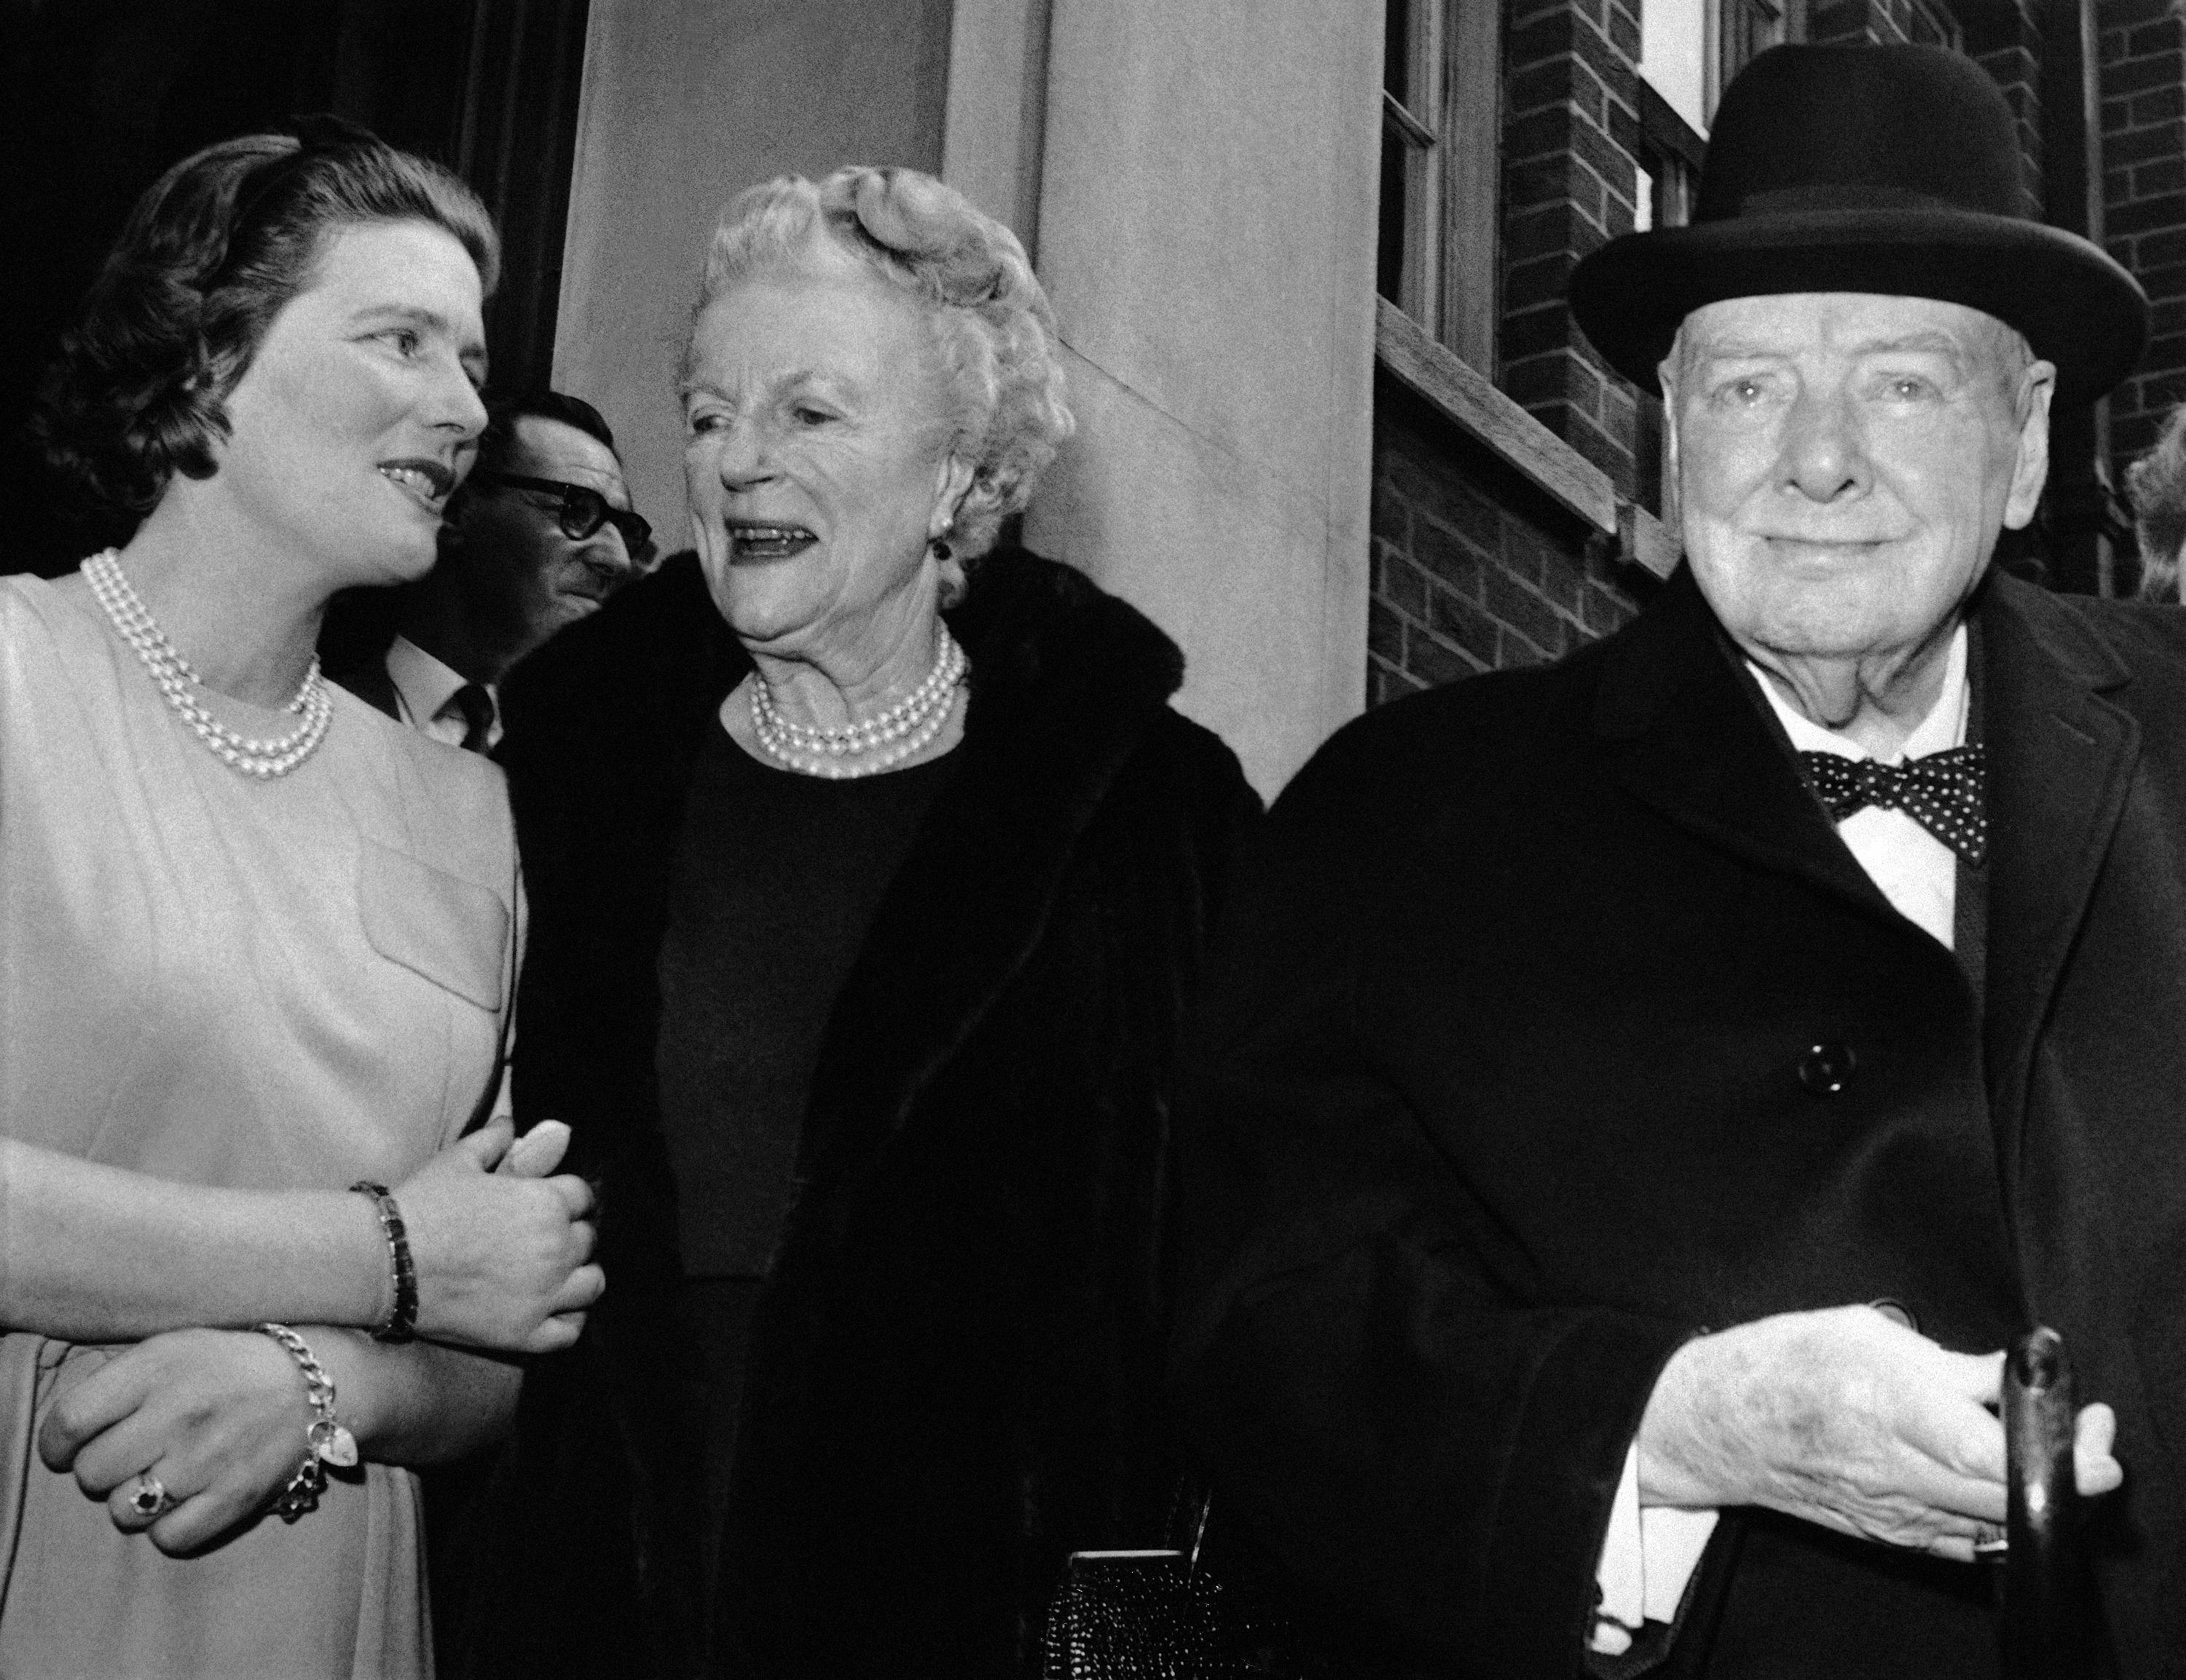 Sir Winston and Lady Clementine Churchill, take their leave of their daughter Mary, wife of Agriculture Minister Christopher Soames, after a family luncheon party to celebrate Lady Churchill's 78th birthday at Tufton Court, London.